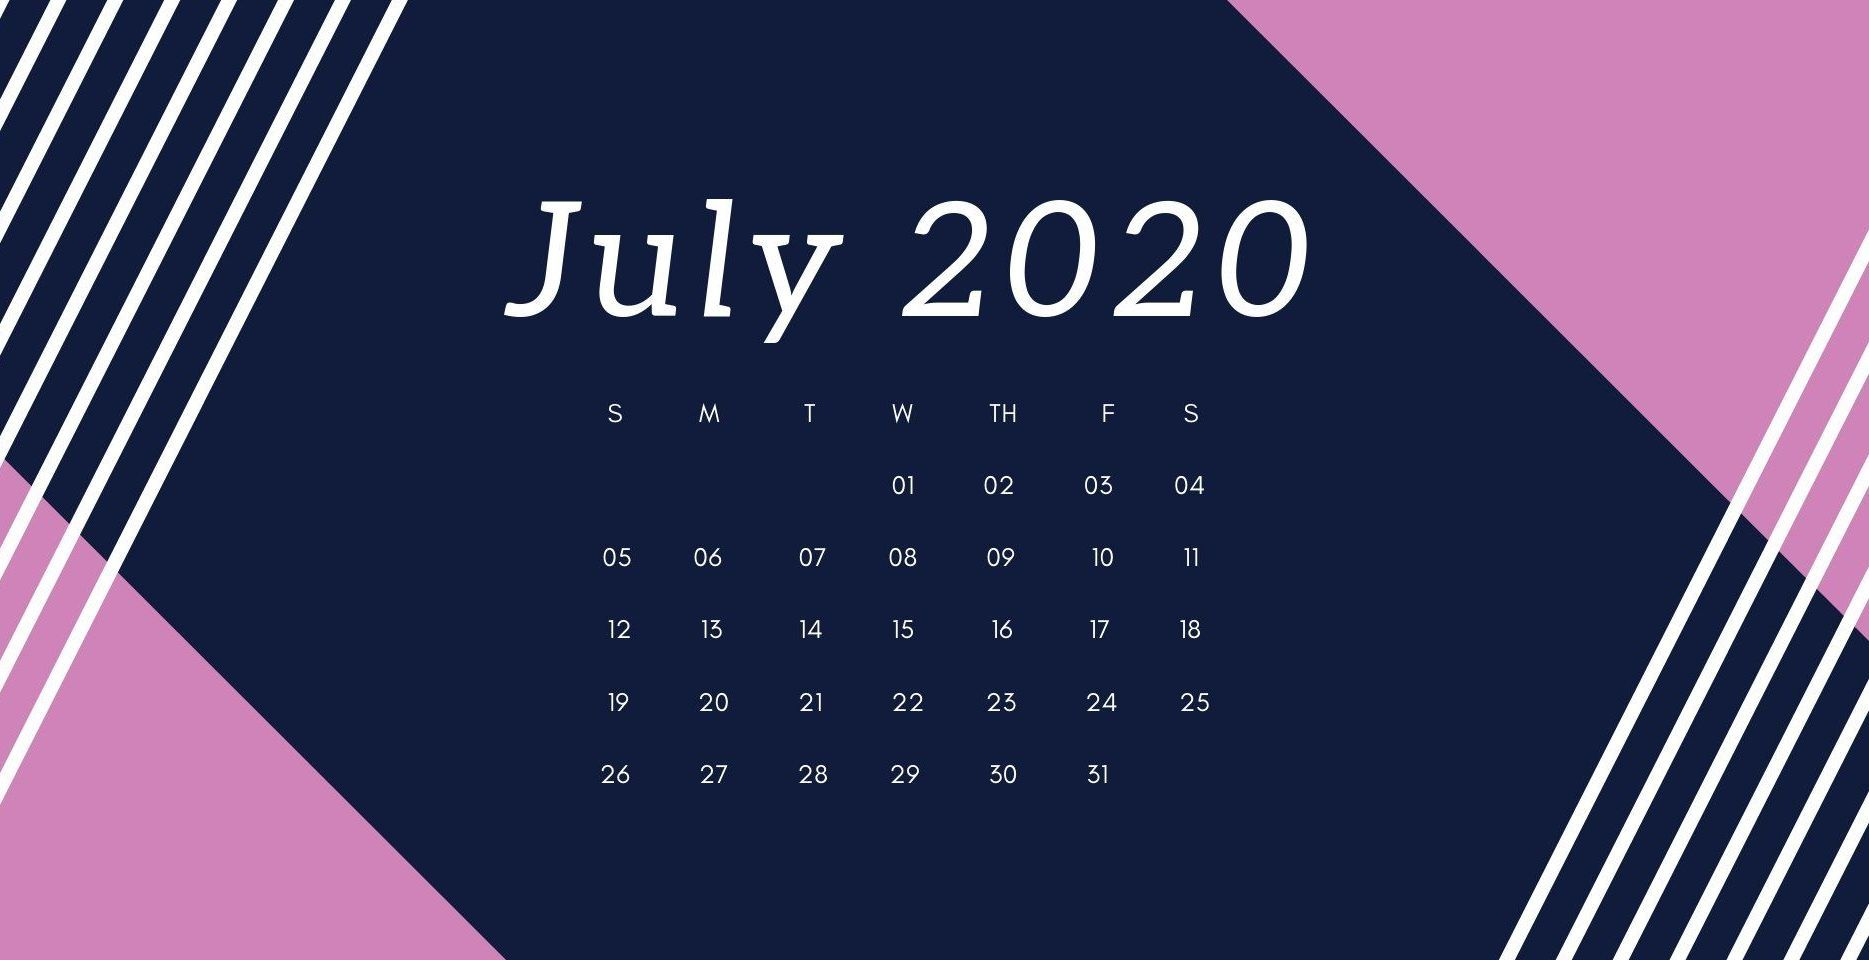 July 2020 Desktop Calendar Wallpaper in 2020 Calendar